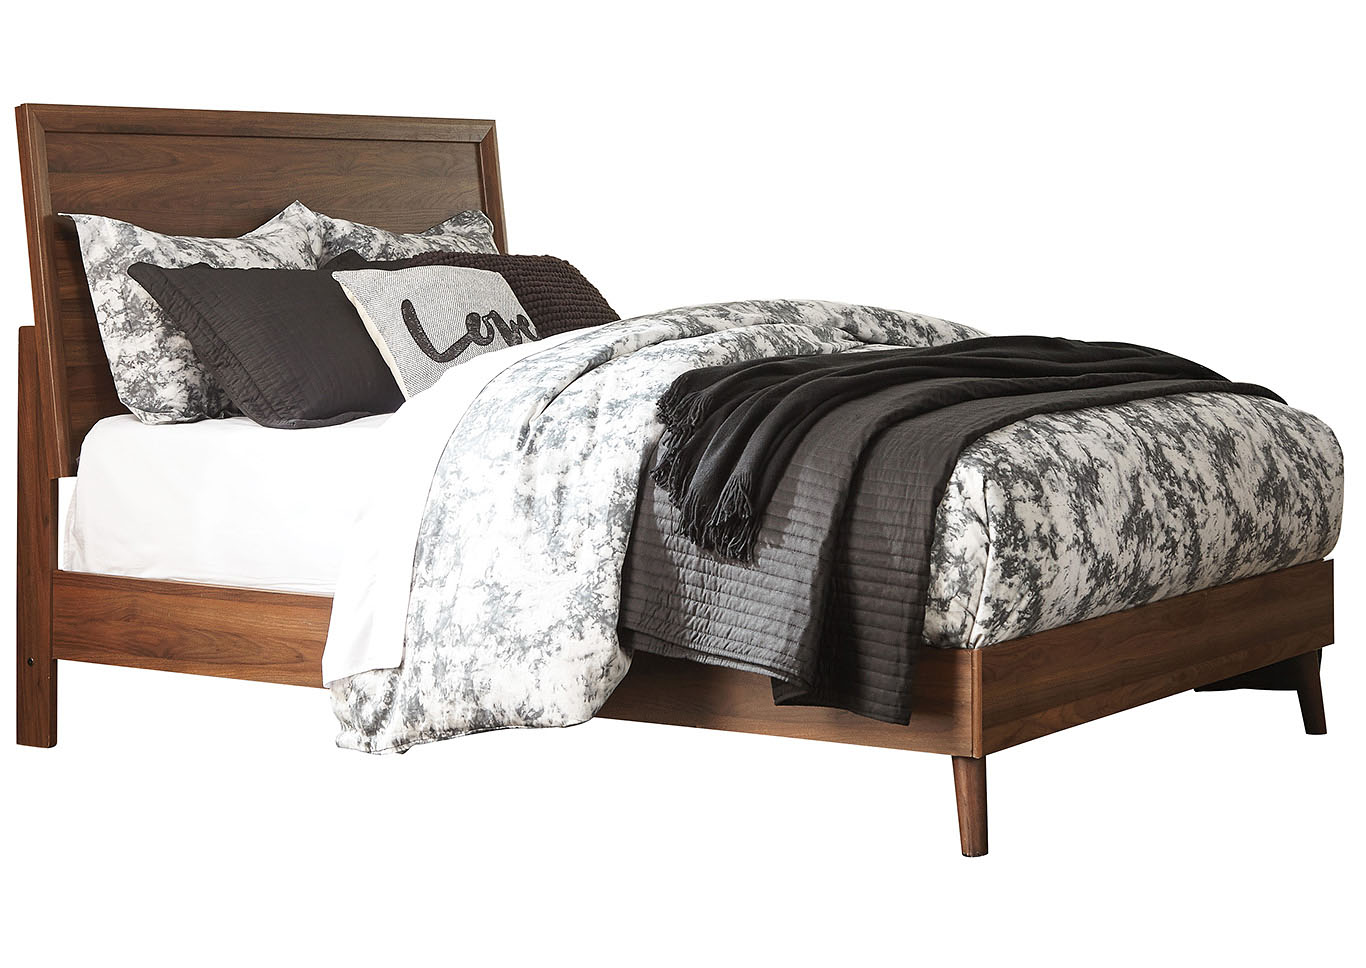 Daneston Brown/Graphite Queen Panel Bed,Signature Design By Ashley